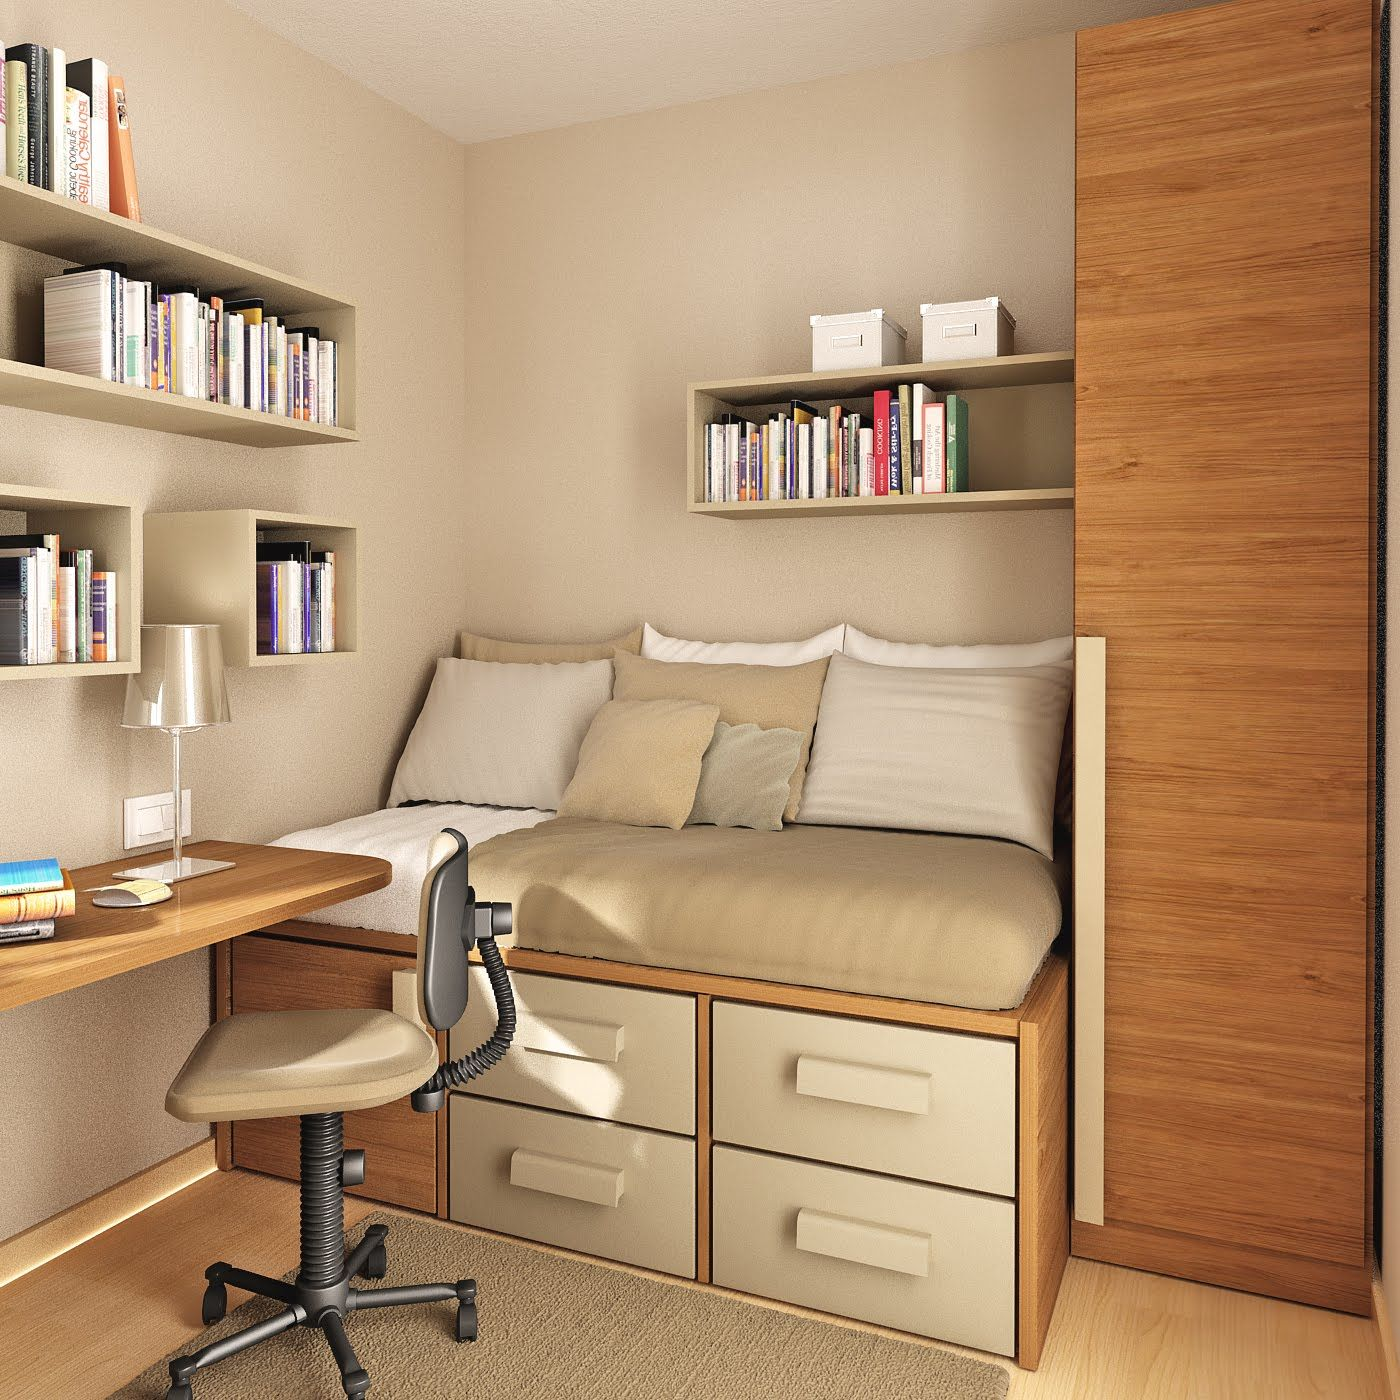 Small Study Room Ideas: Bedroom:2017 Bedroom Brown Wooden Floating Study Table For